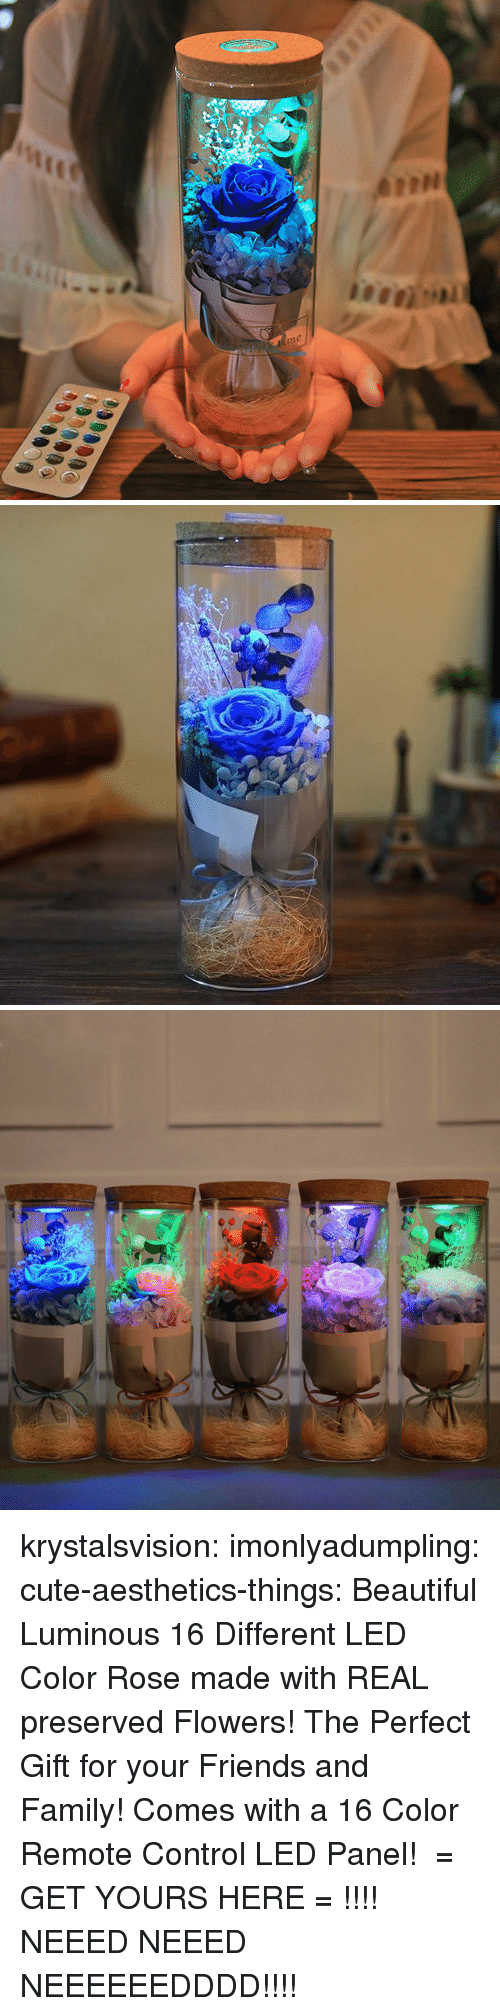 Beautiful, Cute, and Family: me krystalsvision: imonlyadumpling:  cute-aesthetics-things:  Beautiful Luminous 16 Different LED Color Rose made with REAL preserved Flowers! The Perfect Gift for your Friends and Family! Comes with a 16 Color Remote Control LED Panel! = GET YOURS HERE =   !!!!    NEEED NEEED NEEEEEEDDDD!!!!